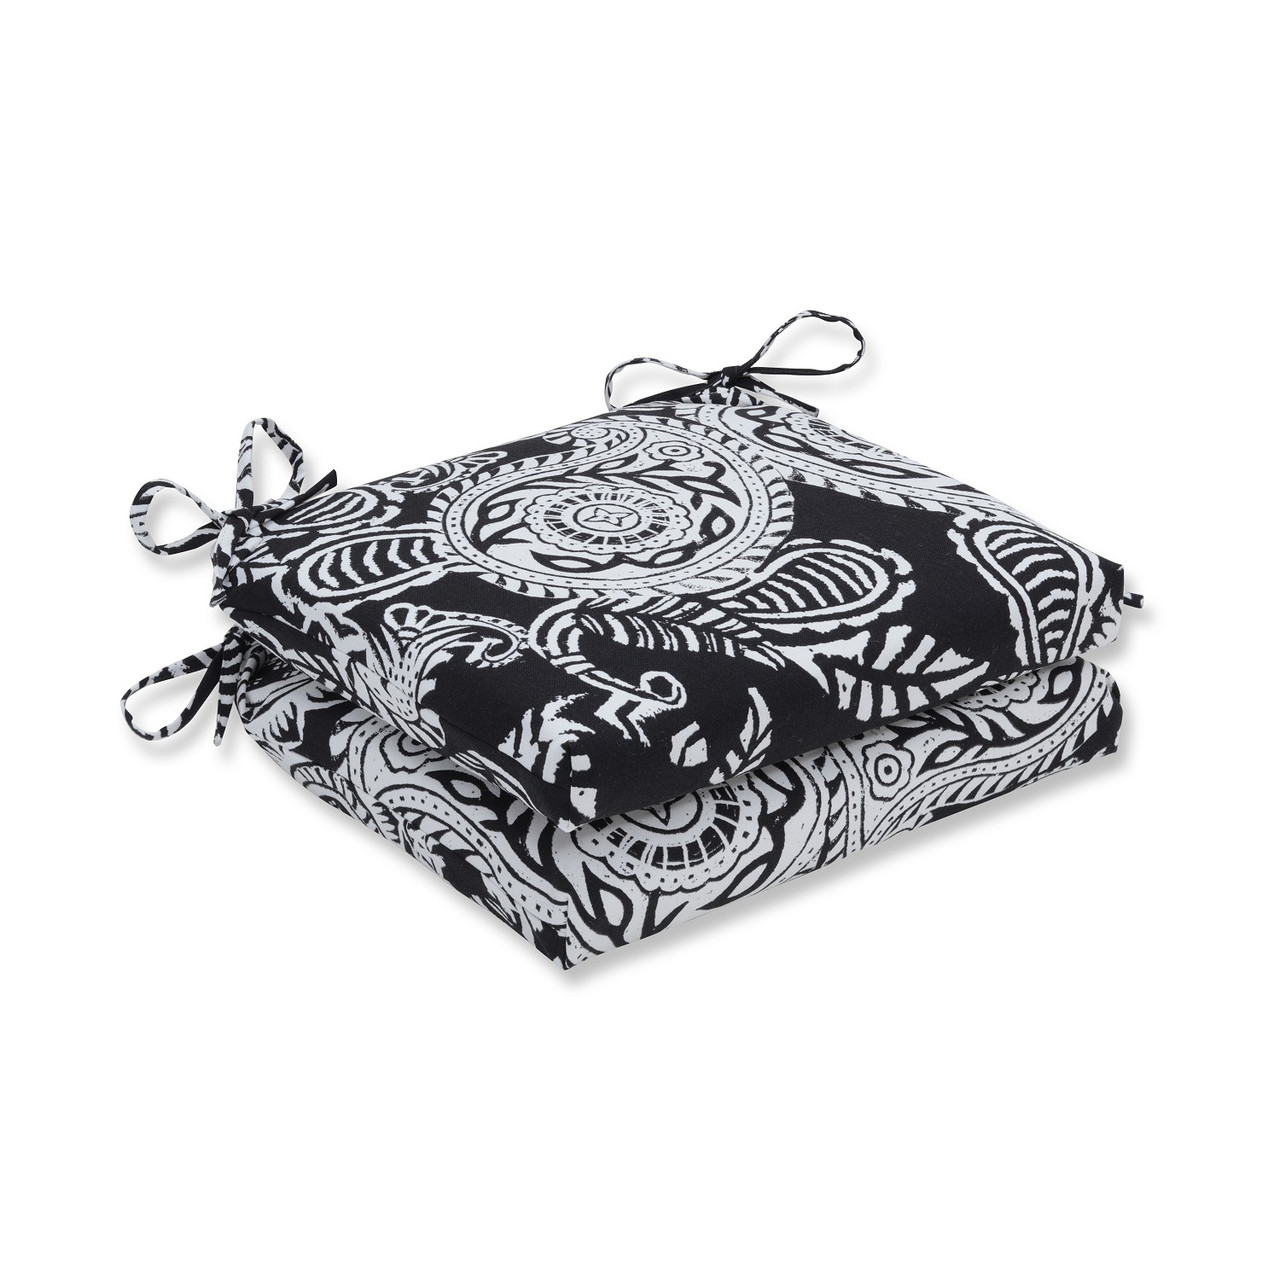 Set Of 2 Black And White Paisley Swirl Outdoor Patio Chair Seat Cushion  With Ties 18.5u201d   32598104